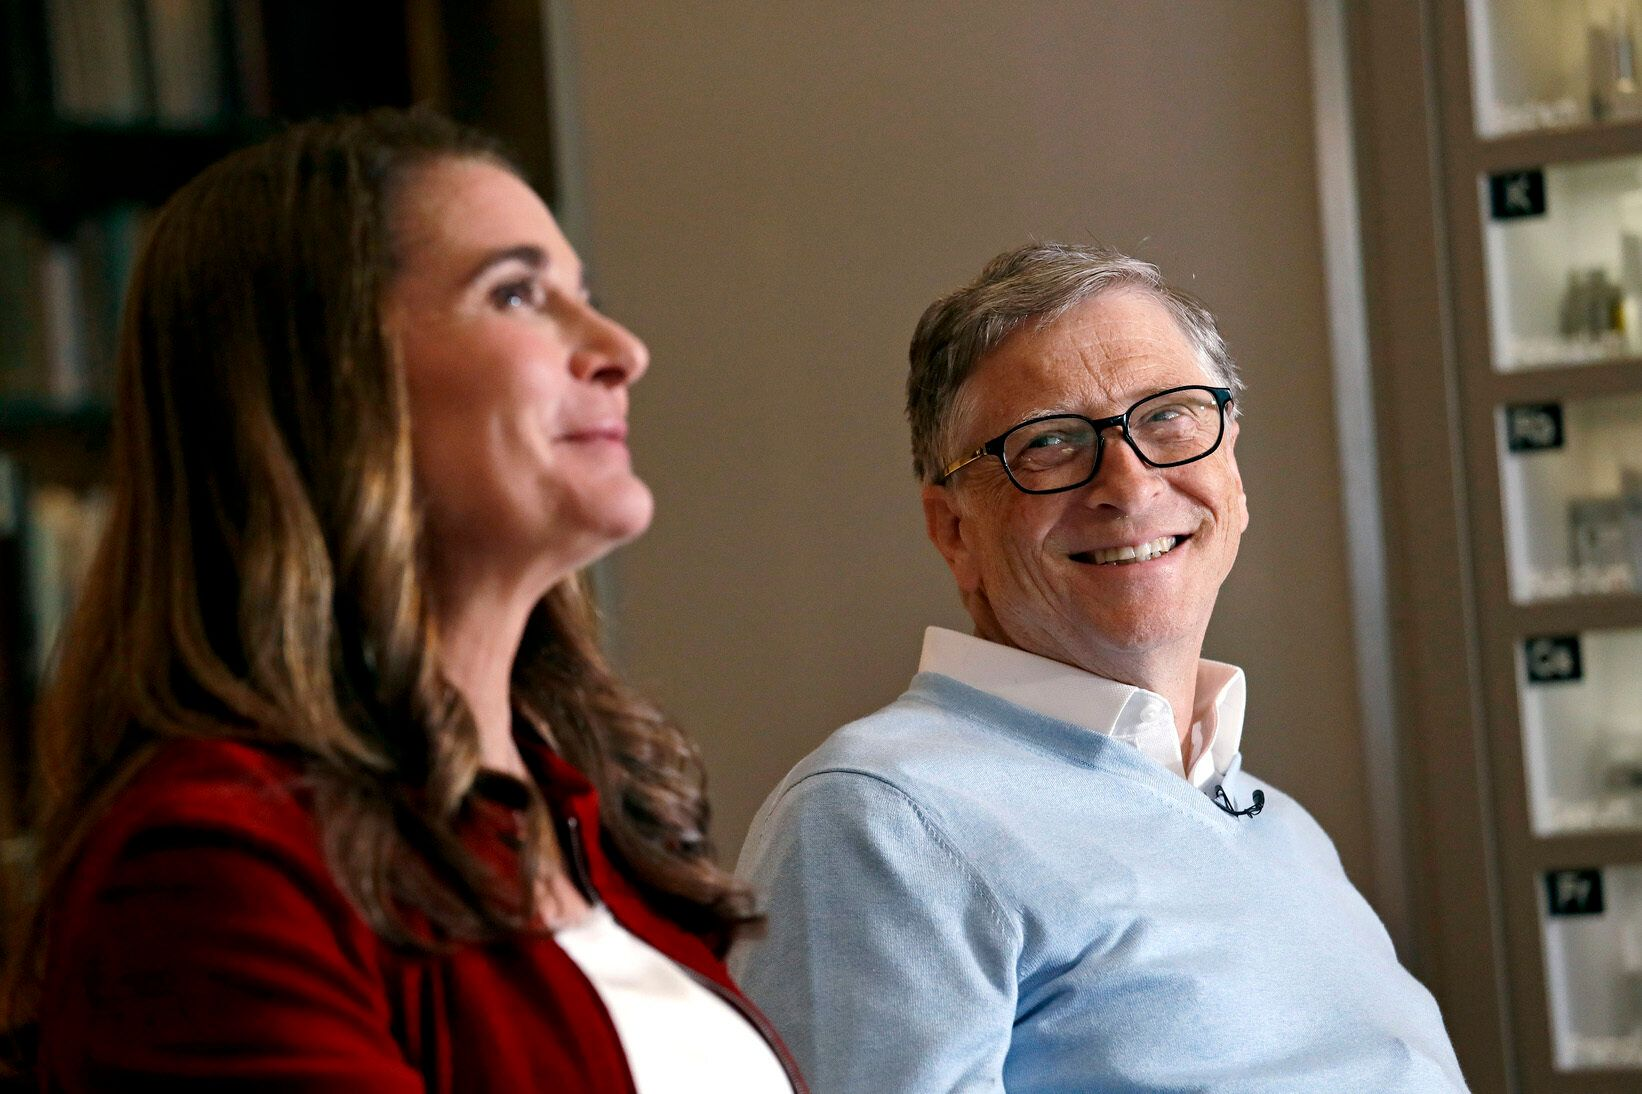 In this Feb. 1, 2019 photo, Bill Gates looks to his wife Melinda as they are interviewed in Kirkland, Wash. The couple, whose foundation has the largest endowment in the world, are pushing back against a new wave of criticism about whether billionaire philanthropy is a force for good. They said they're not fazed by recent blowback against wealthy giving, including viral moments at the World Economic Forum and the shifting political conversation about taxes and socialism. (AP Photo/Elaine Thompson)